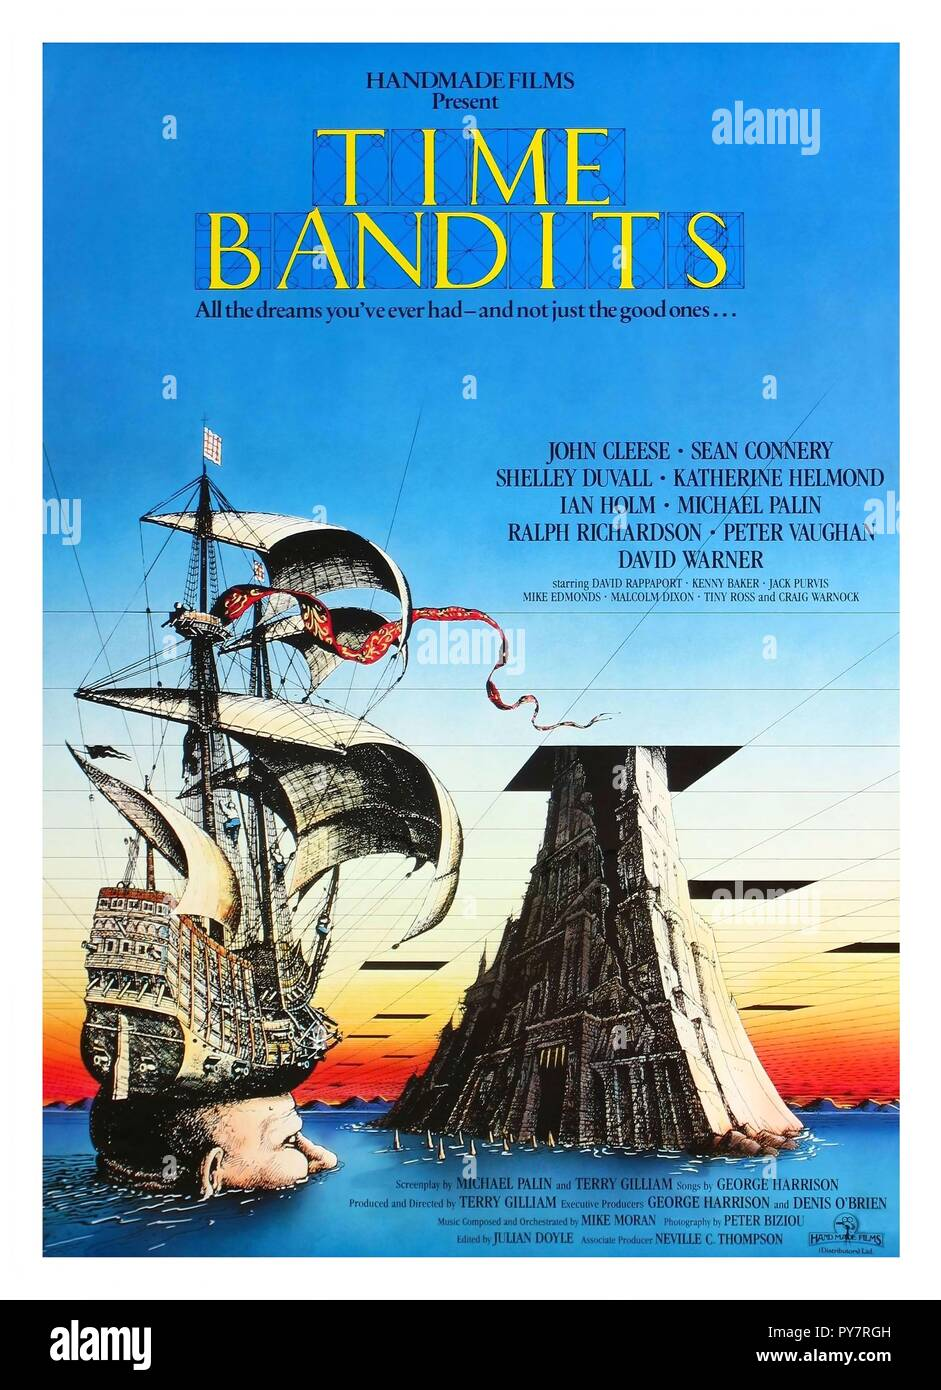 Original film title: TIME BANDITS. English title: TIME BANDITS. Year: 1981. Director: TERRY GILLIAM. Credit: HANDMADE FILMS / Album - Stock Image